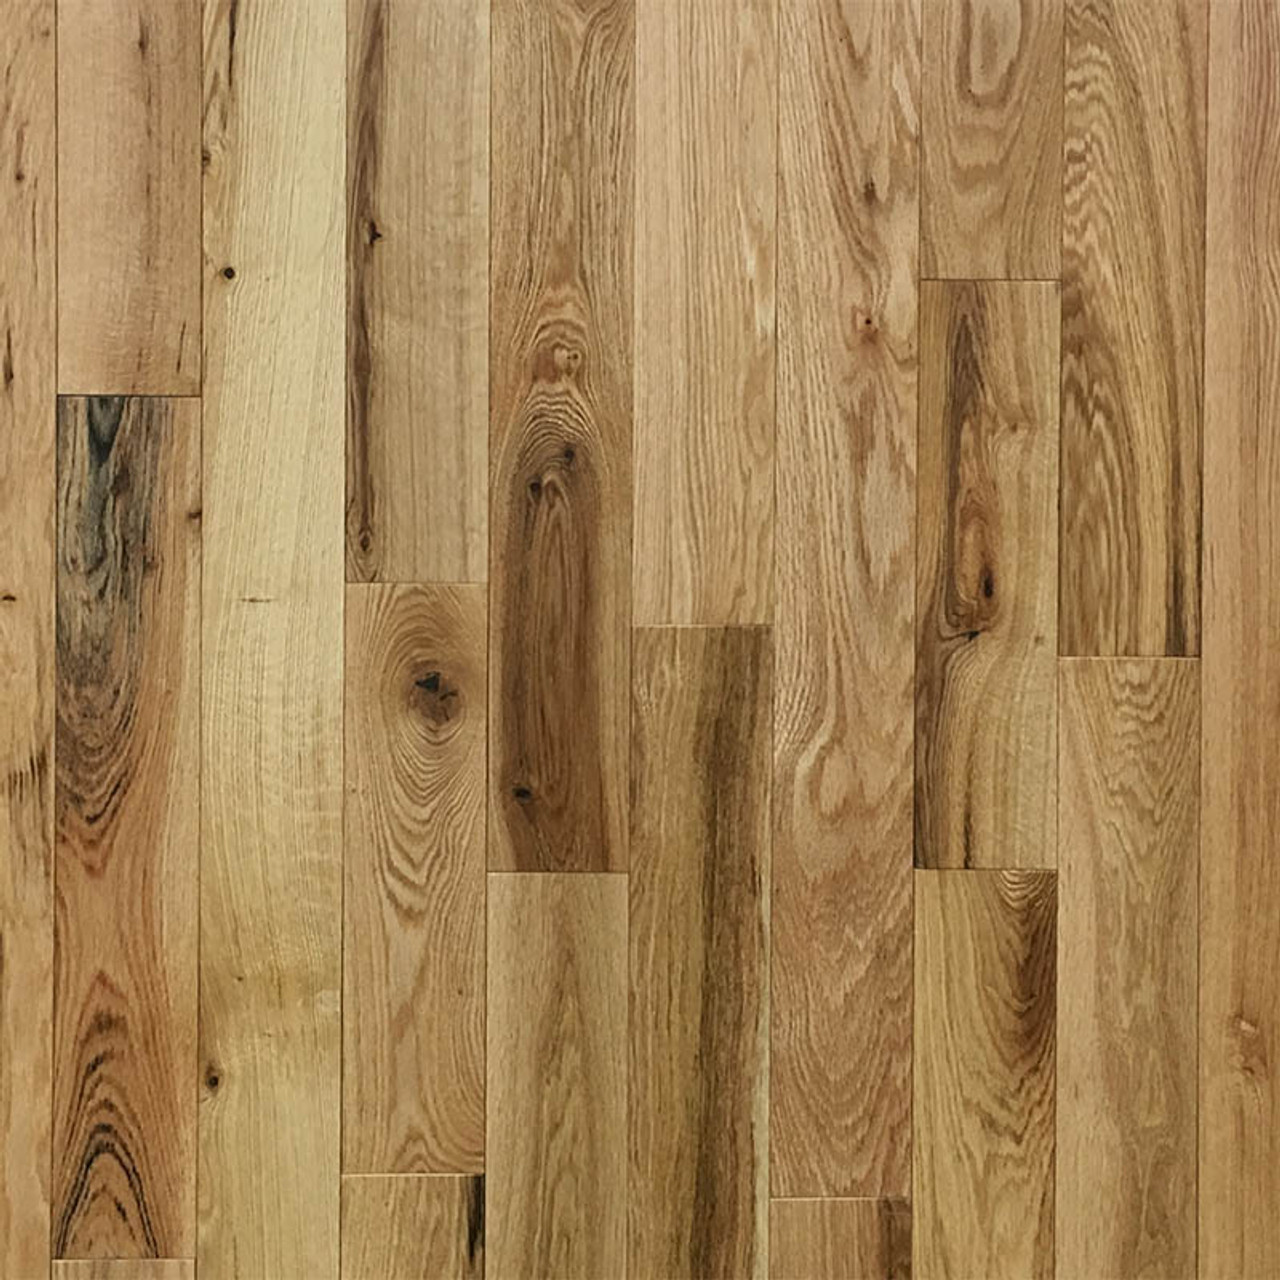 3.25 Red Oak Bistro Natural Solid Hardwood Flooring | 20 Sq.Ft. Per Box | Sold by the Box